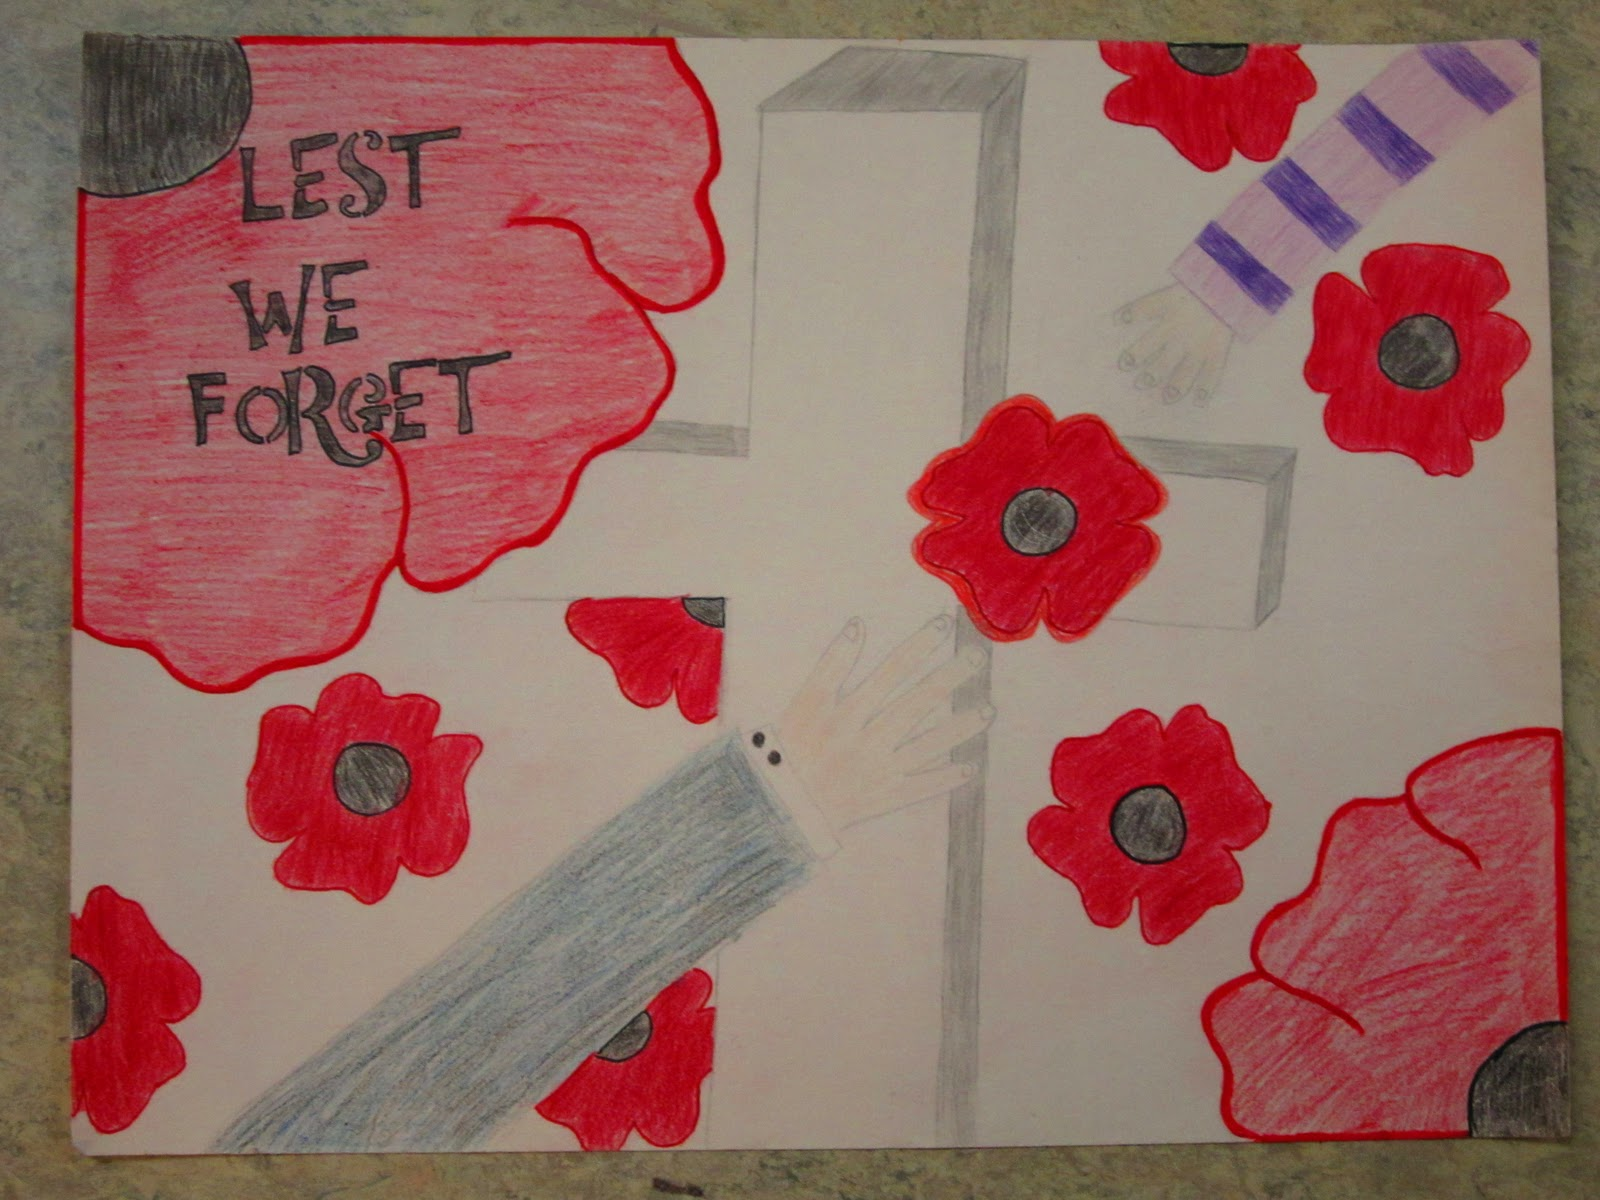 Drawn poster remembrance day #9